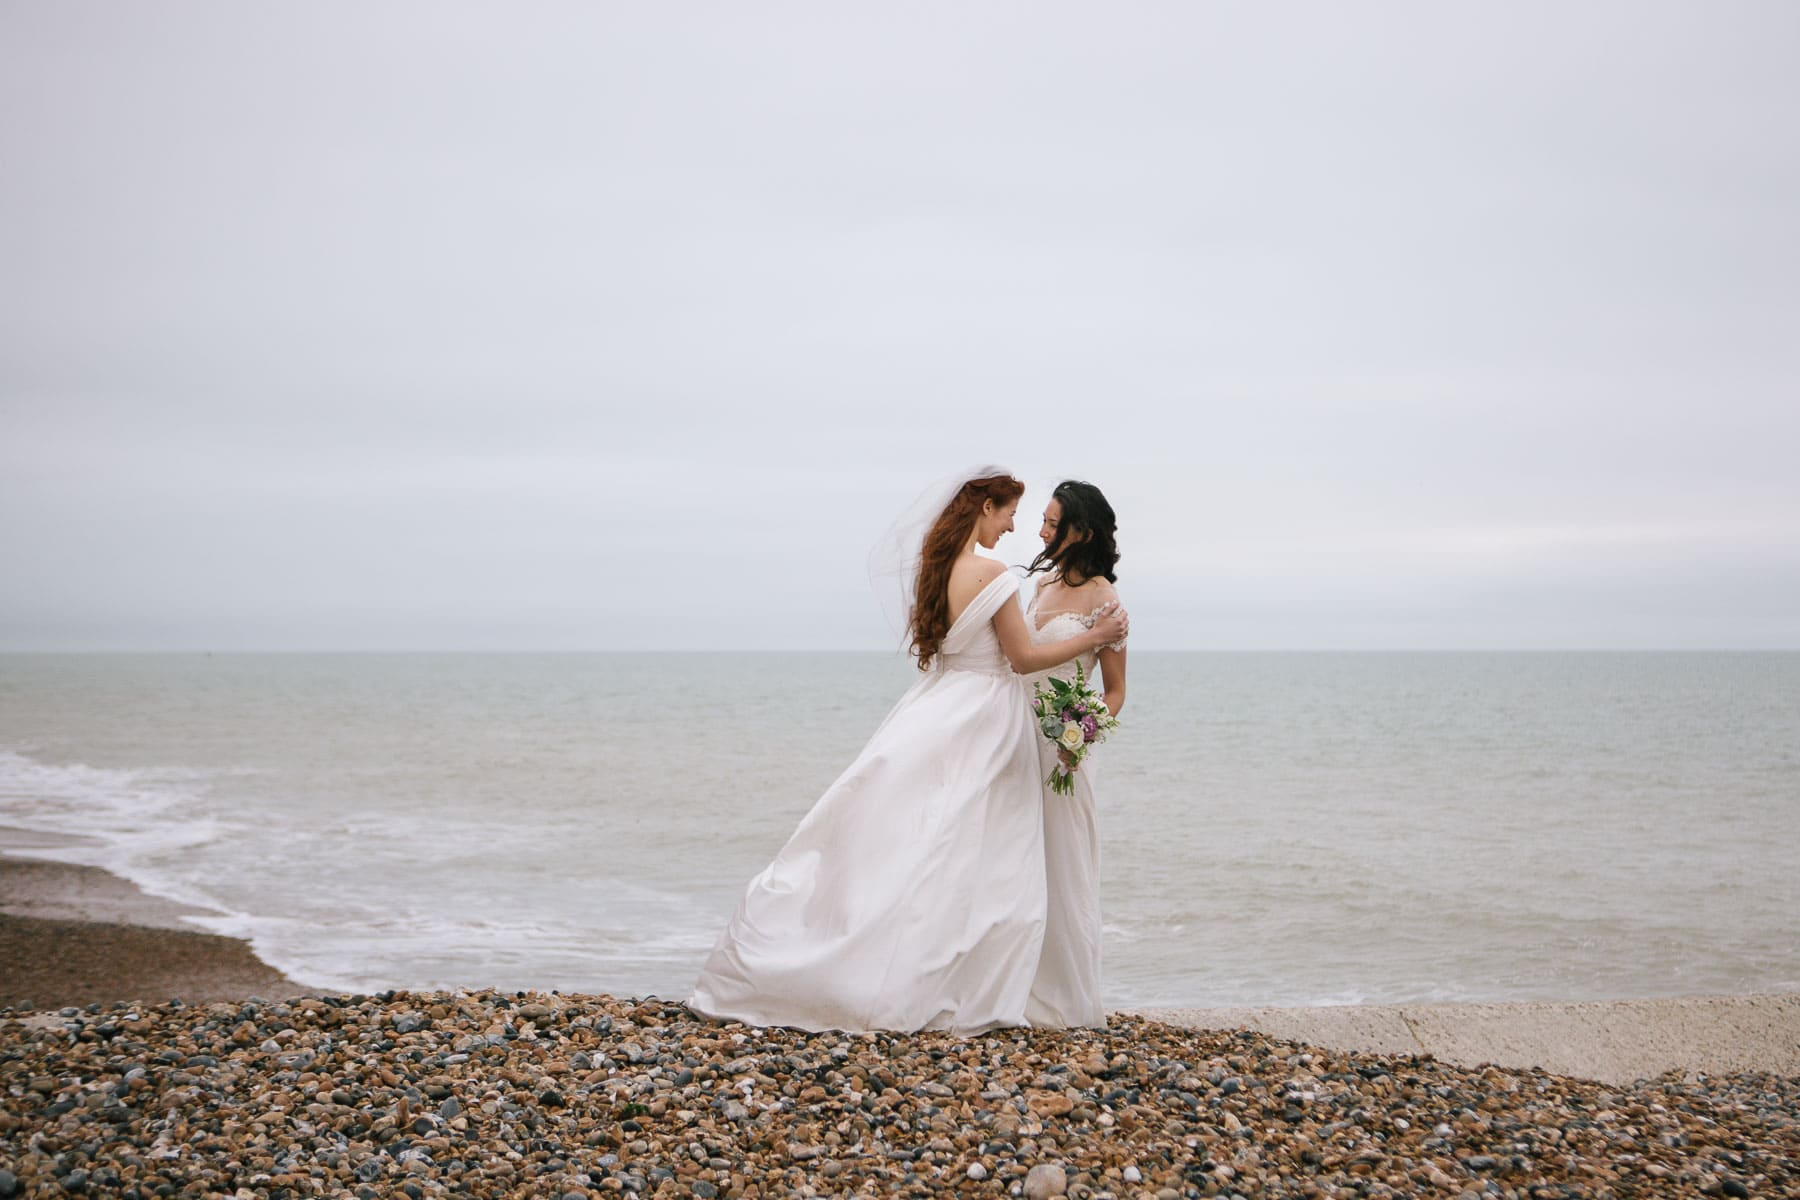 Jessica and Claudia embrace at the water's edge on Brighton beach